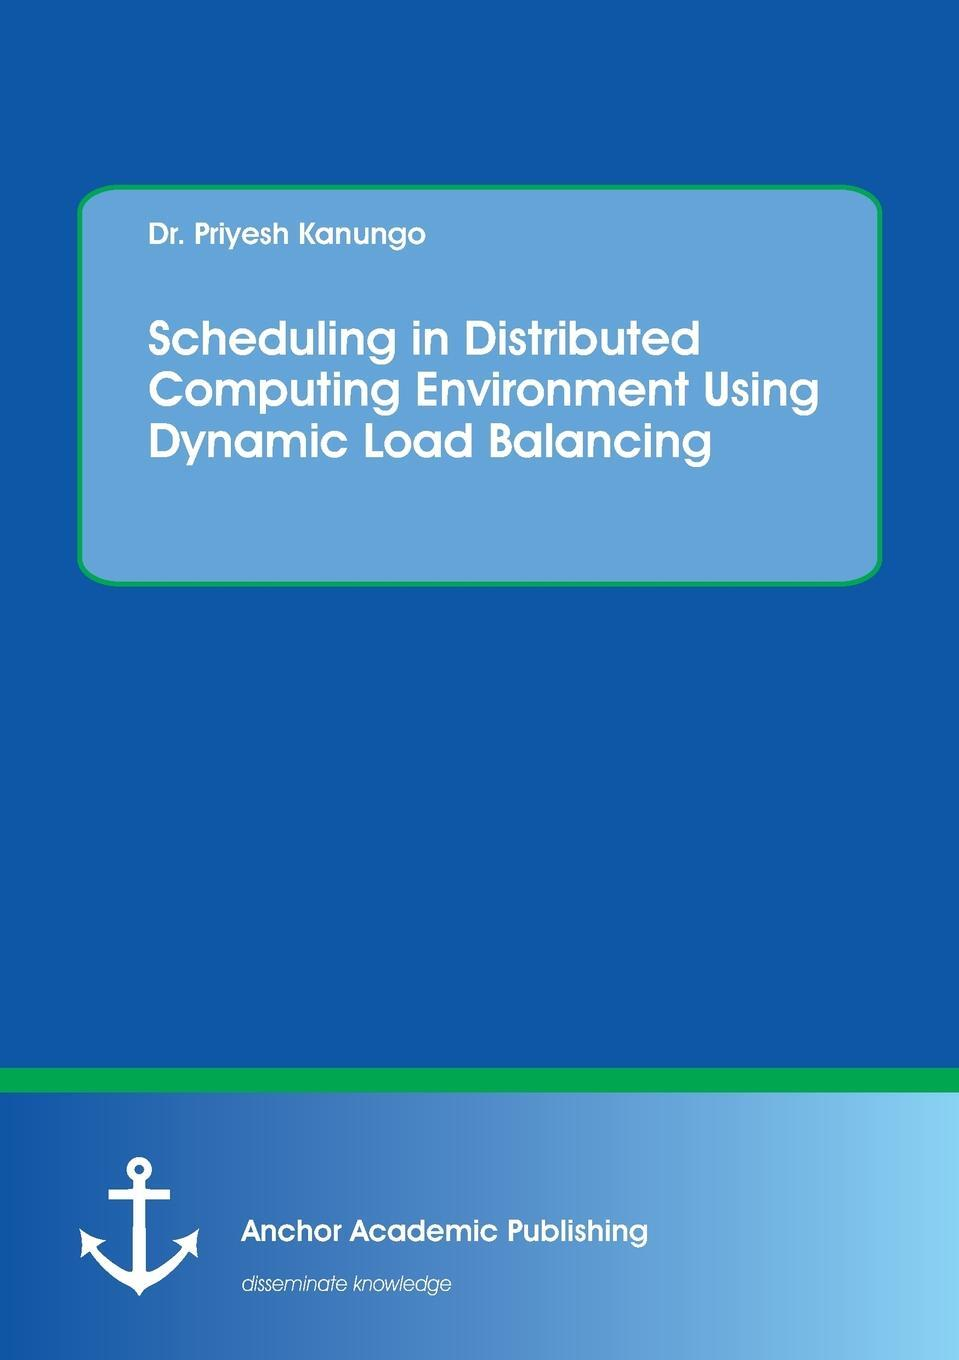 Priyesh Kanungo. Scheduling in Distributed Computing Environment Using Dynamic Load Balancing